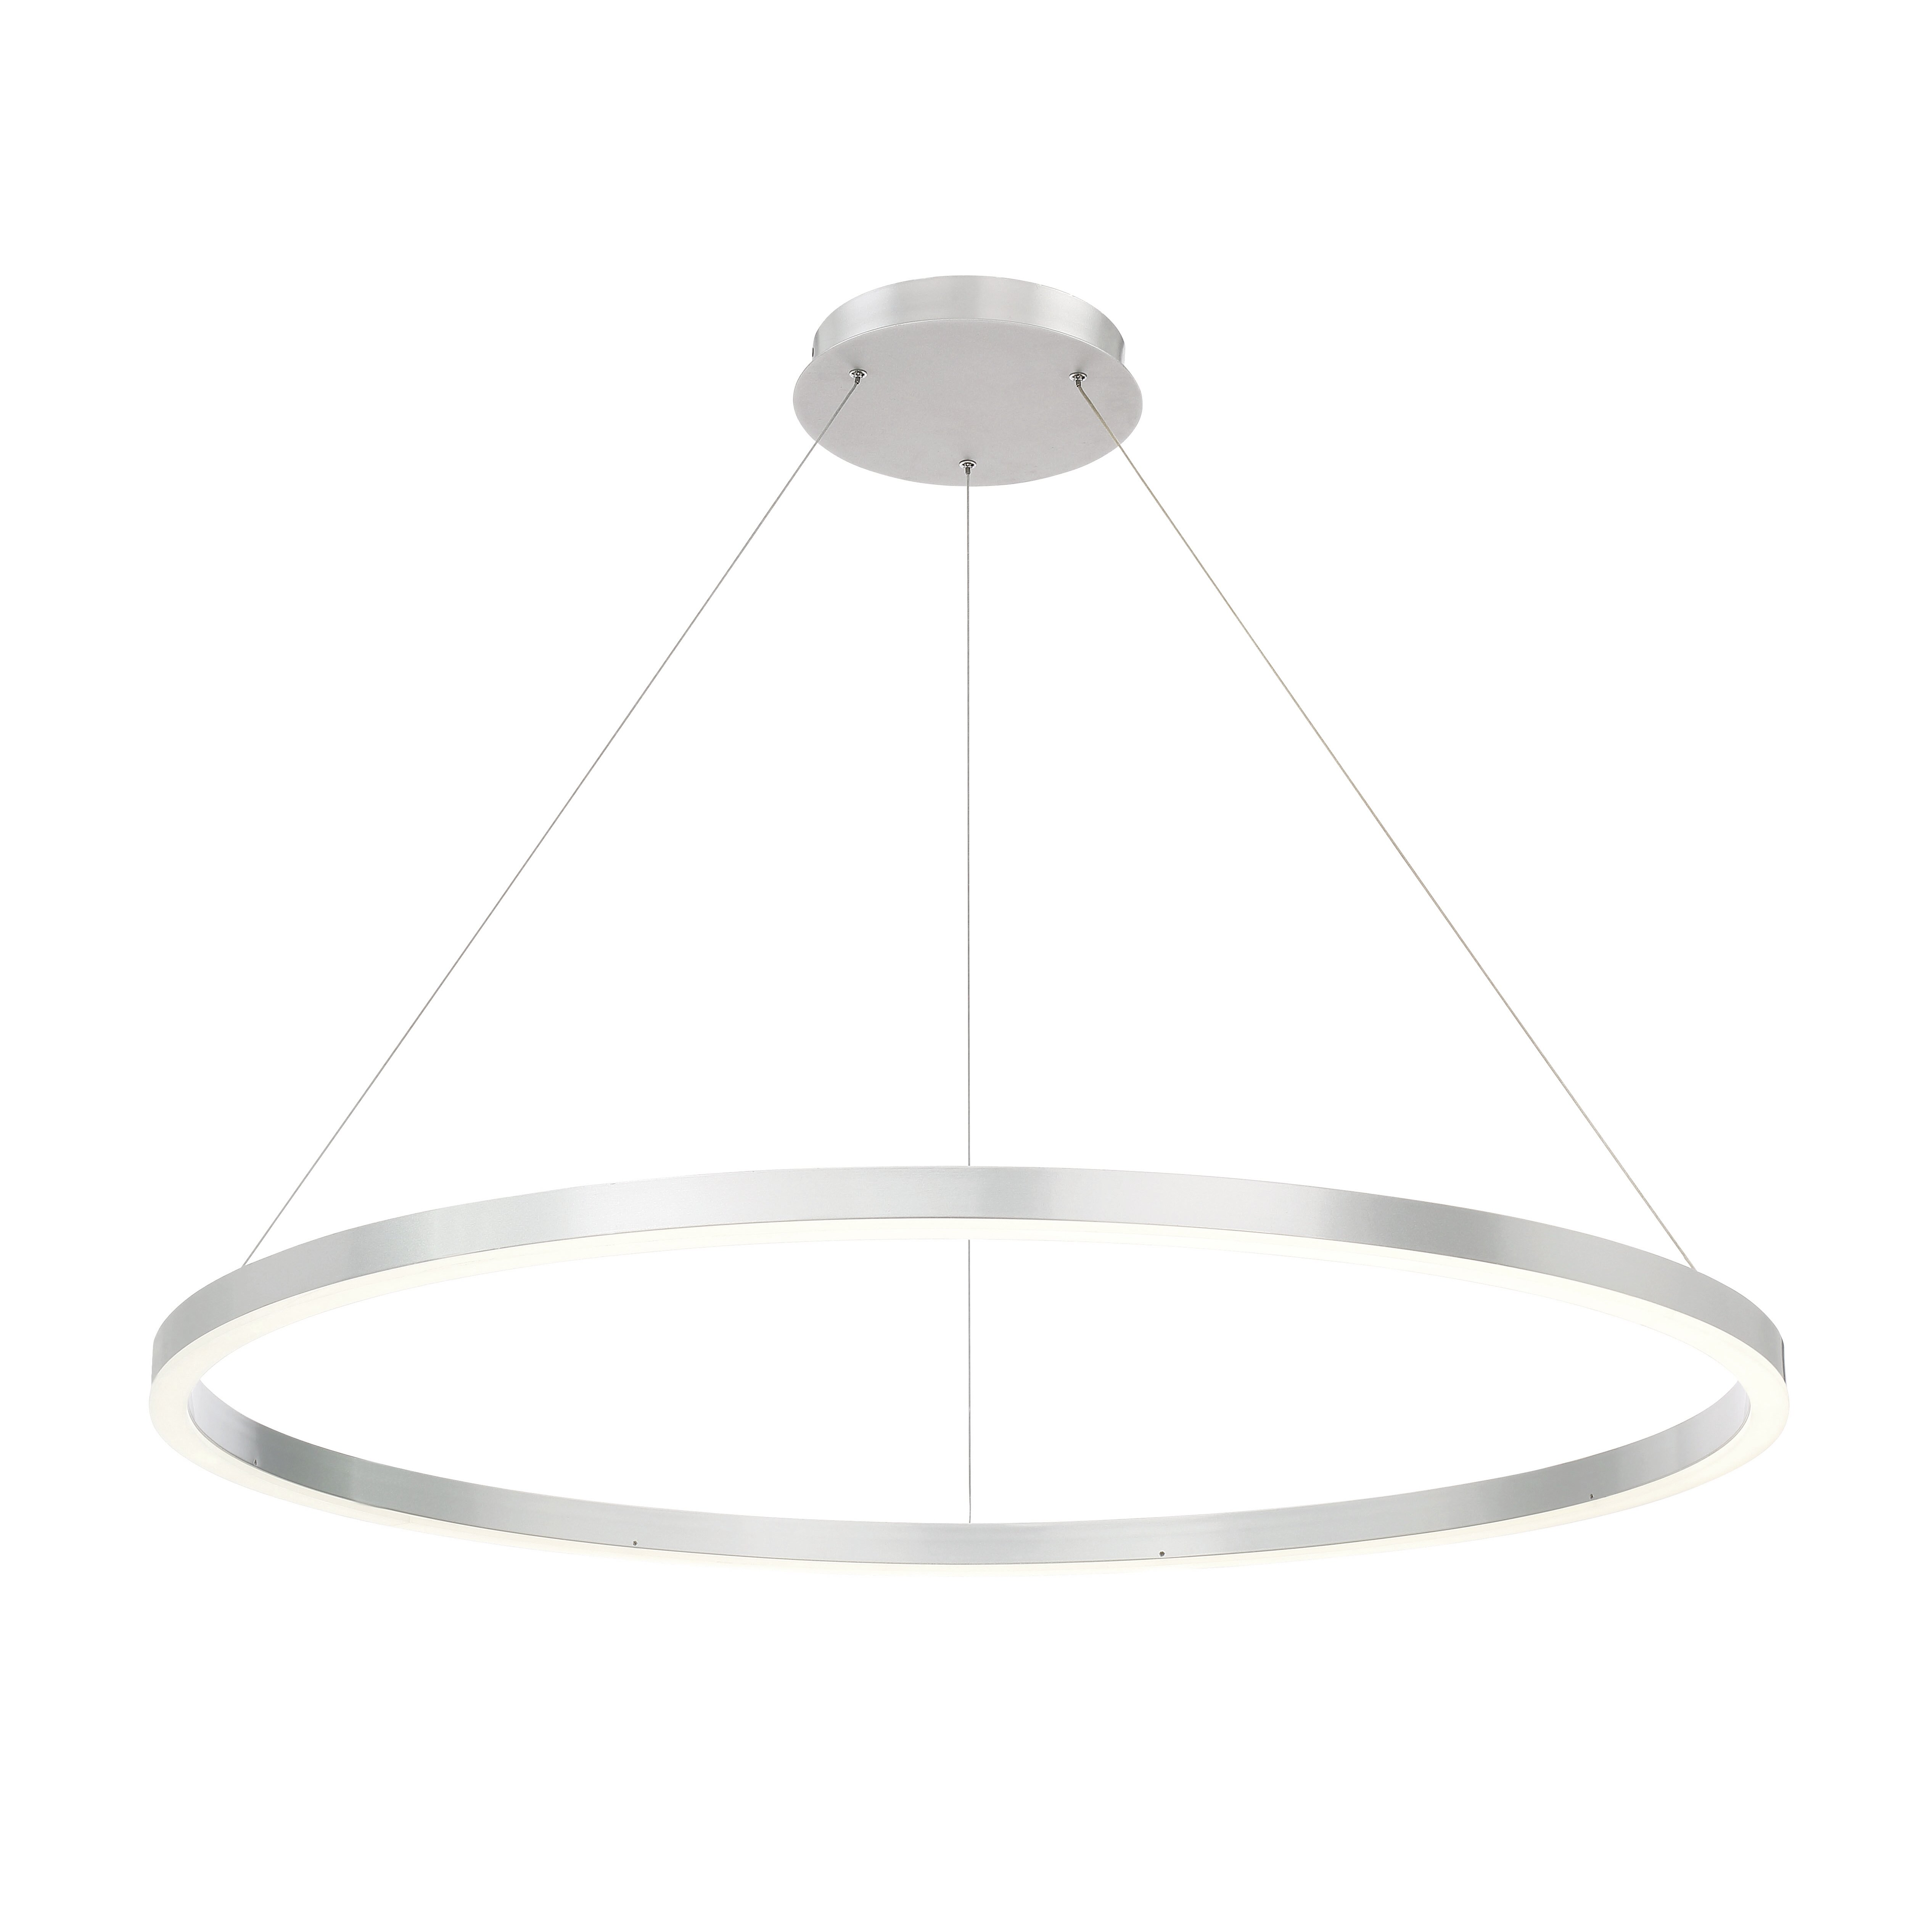 drums pendant decorating ceiling drum accessories lighting living shade of lights great com plafond unique areas in modern painted photos white light attached clubanfi luxury